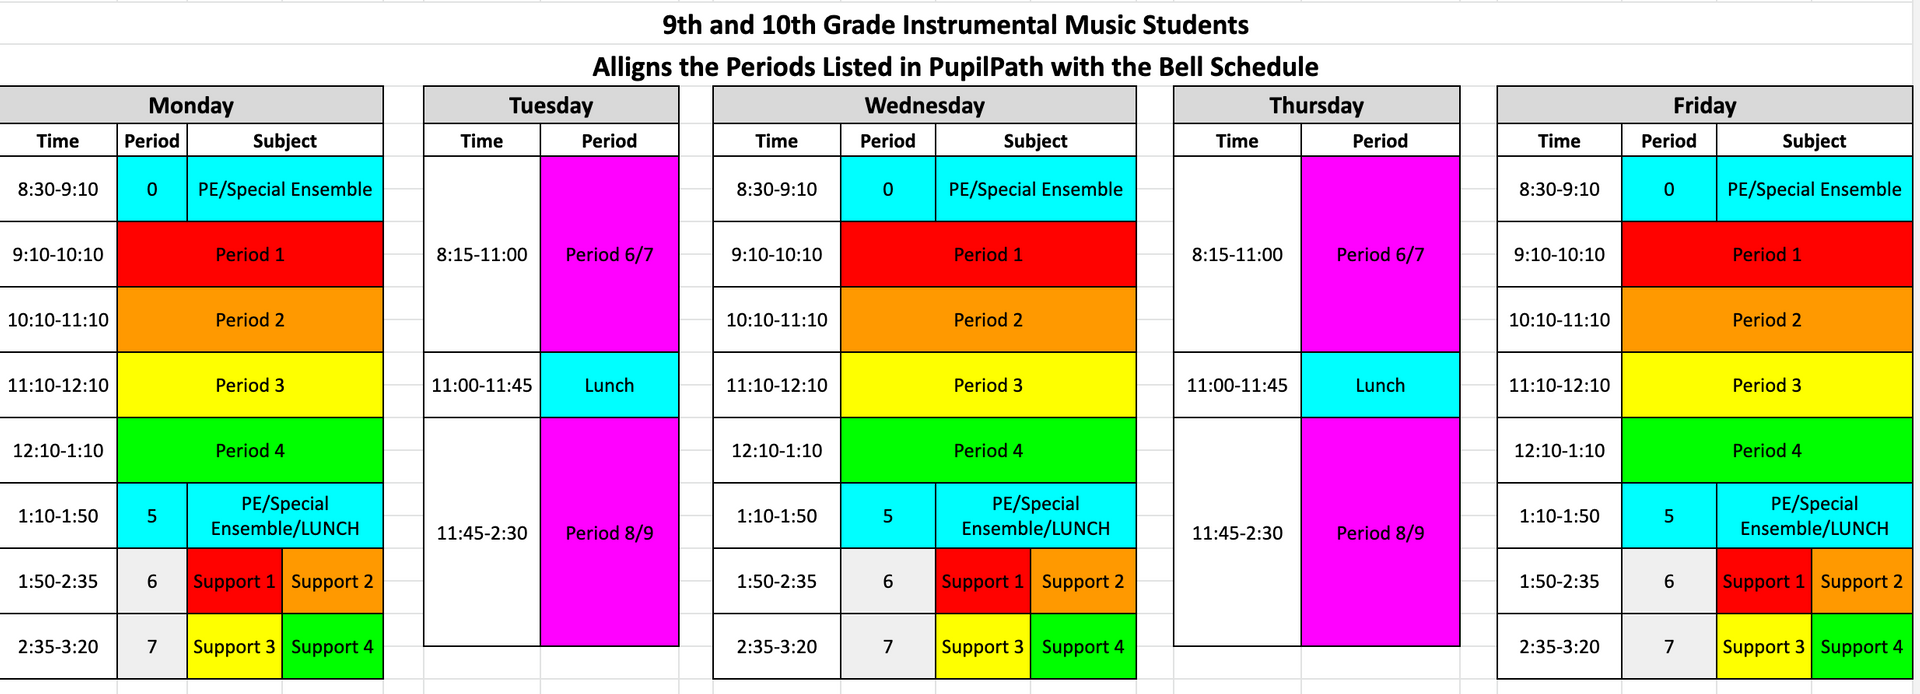 Instrumental Bell Schedule Grades 9 and 10